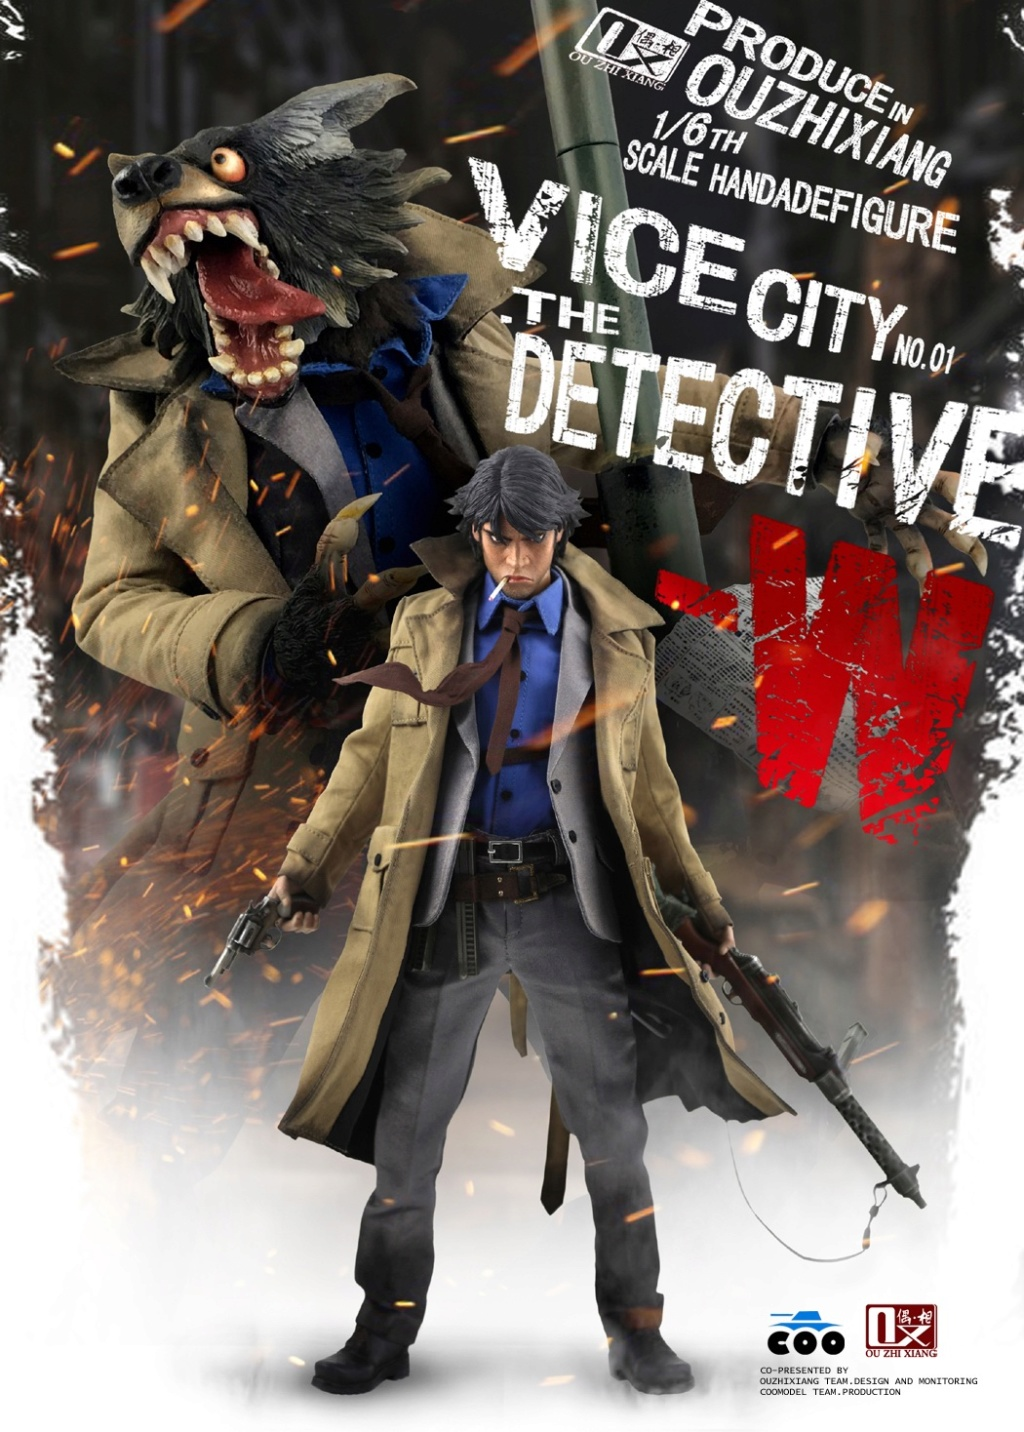 DetectiveW - NEW PRODUCT: COOMODEL X Even: 1/6 Vice City - Detective W [Standard Edition & Collector's Edition] - Four-headed configuration 20252010